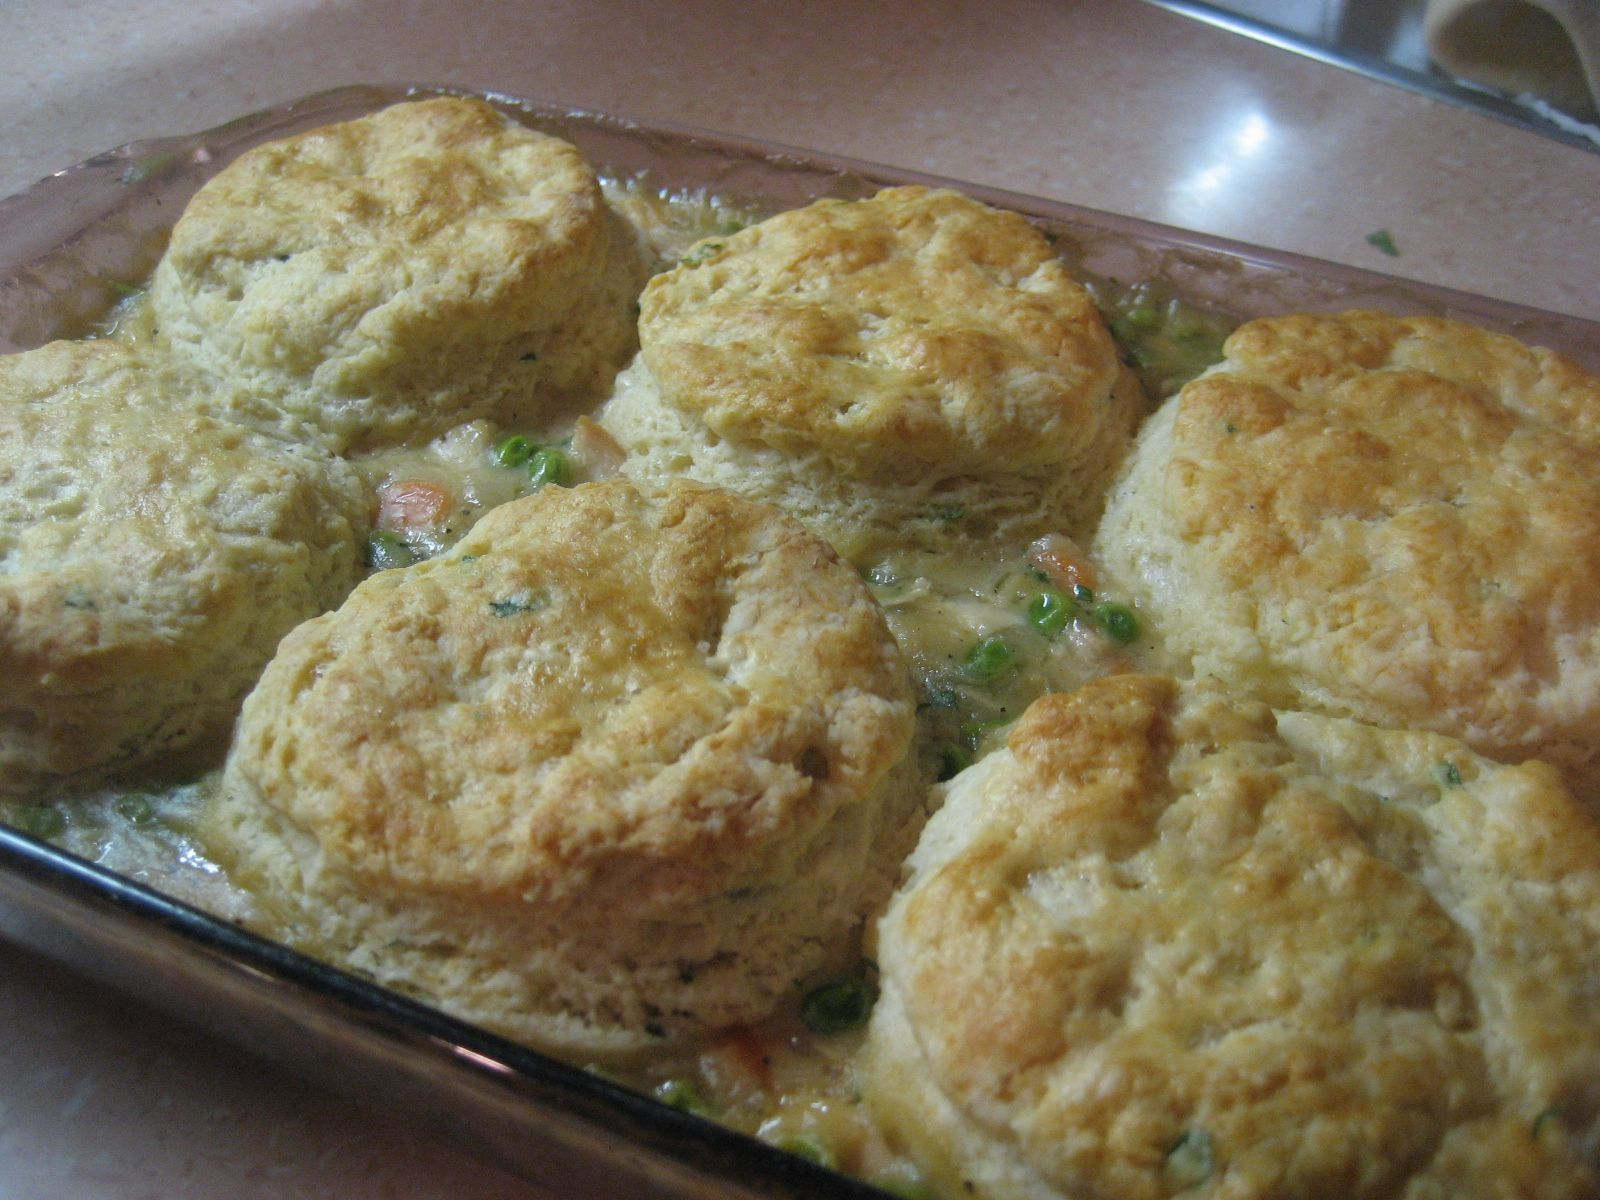 barefoot contessa's chicken stew with biscuits. this recipe is